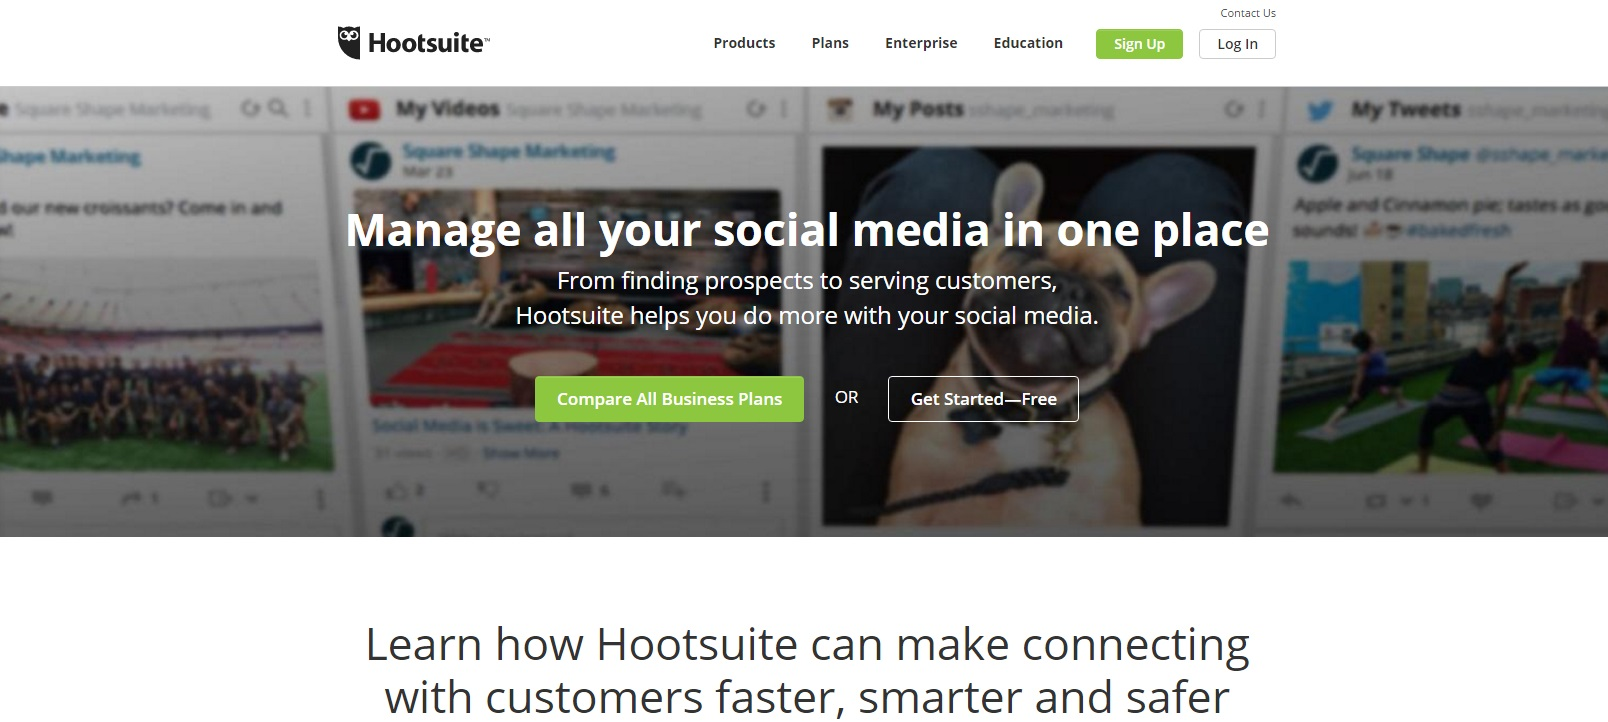 HootSuite Social Media Marketing Tools